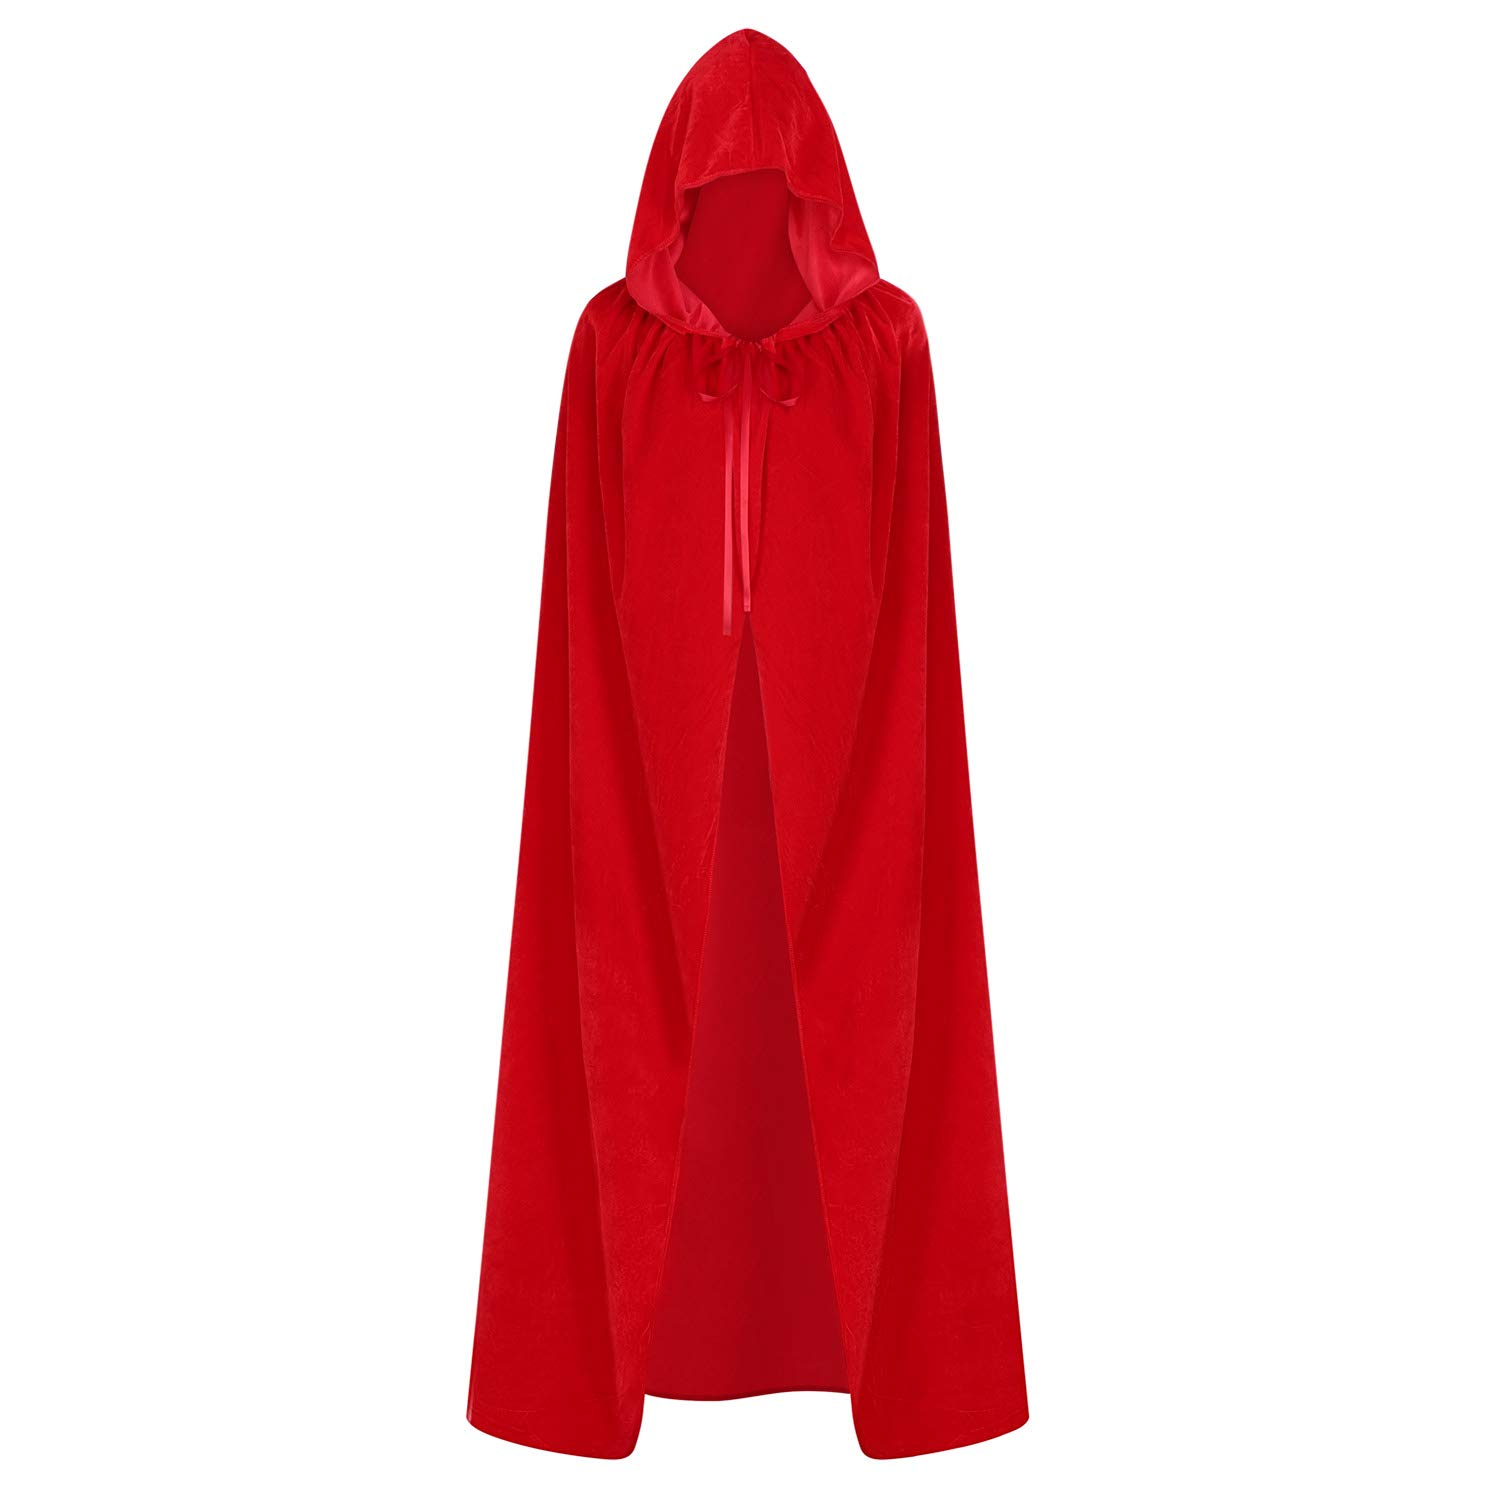 LONTG Halloween Adults Costume Cospaly Cloak Hooded Cape Long Velvet Cloak Robe Witch Wizard Vampire Costume Fanny Dress Gothic Knight Medieval Cape Christmas Costume Party Accessory Cosplay Props